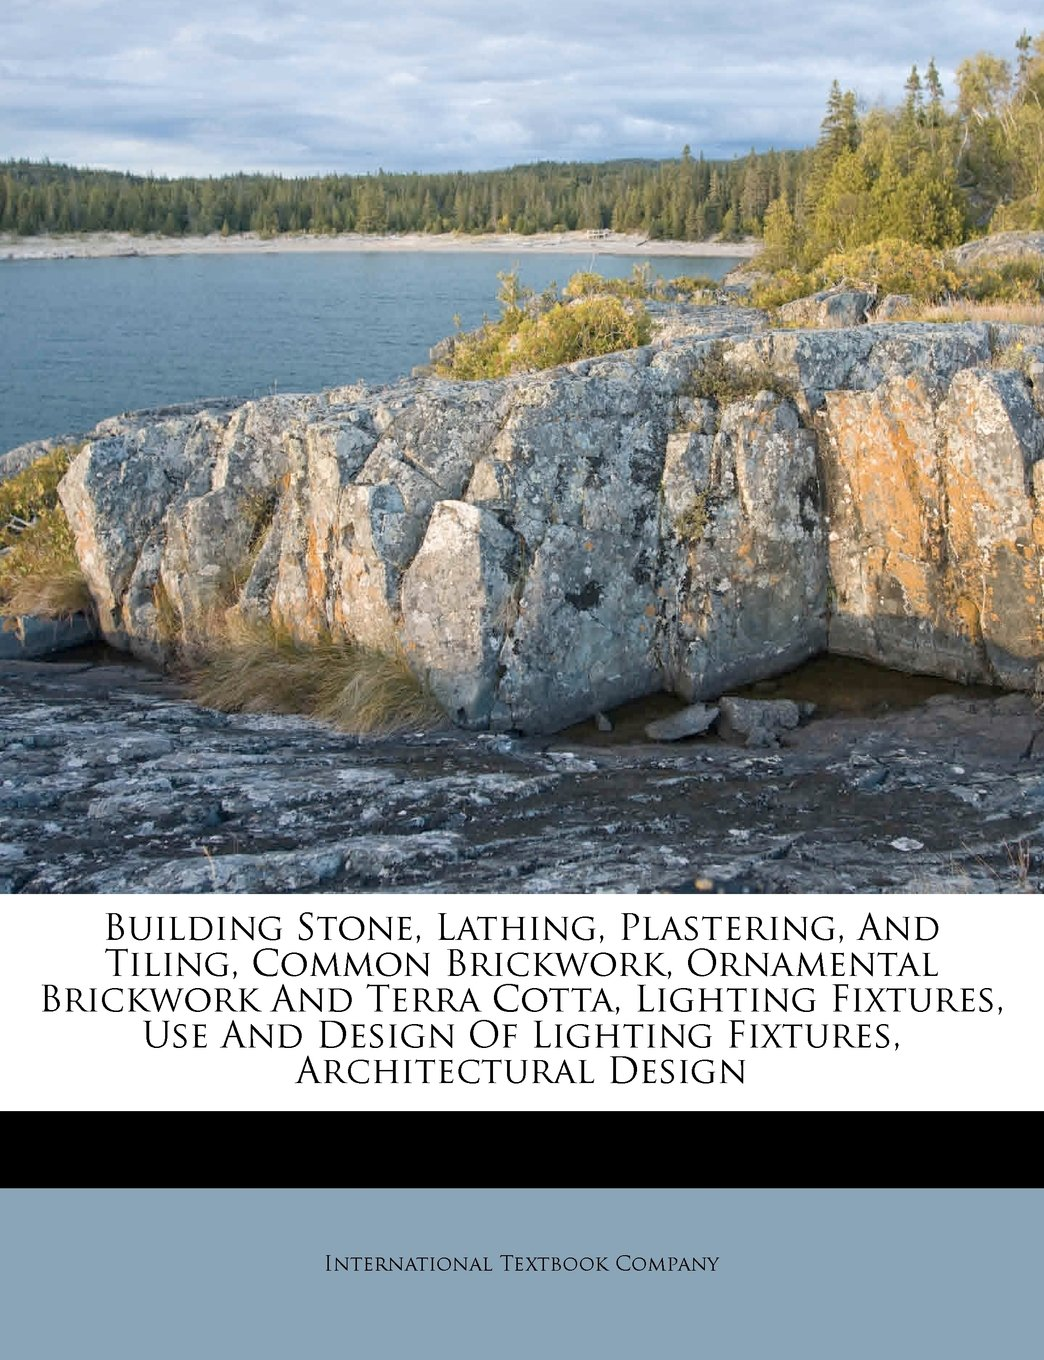 Download Building Stone, Lathing, Plastering, And Tiling, Common Brickwork, Ornamental Brickwork And Terra Cotta, Lighting Fixtures, Use And Design Of Lighting Fixtures, Architectural Design pdf epub